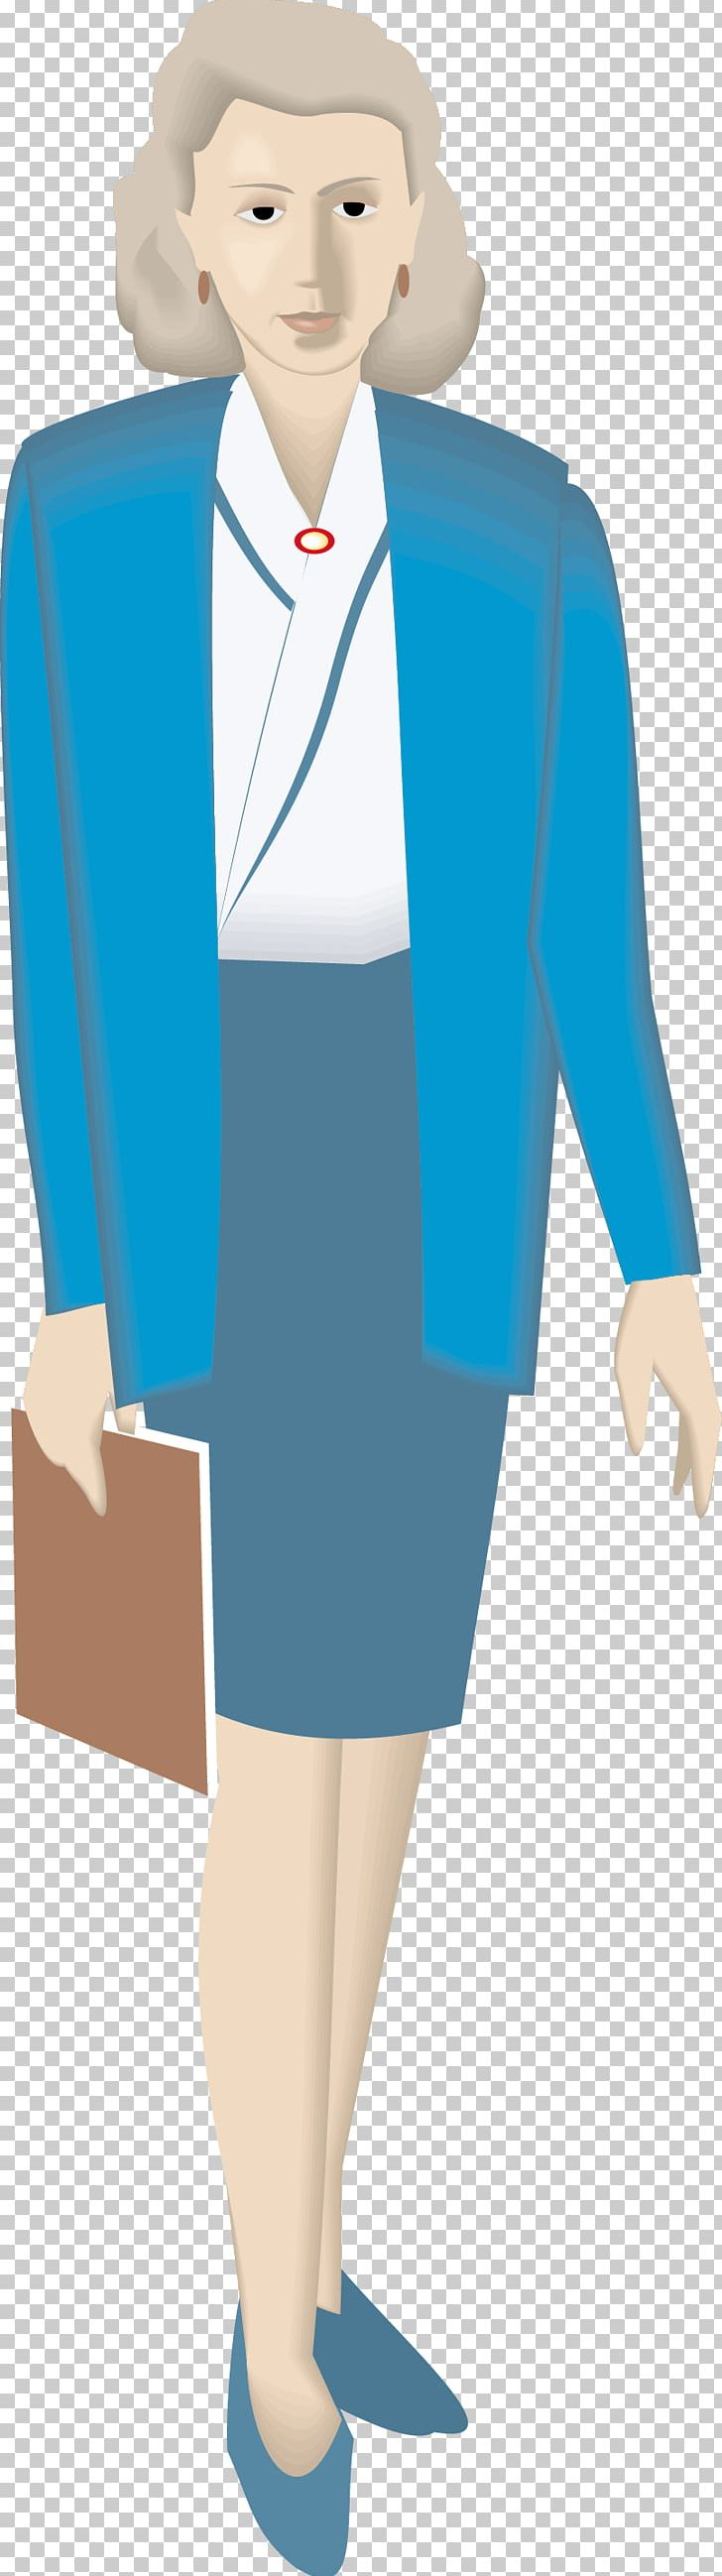 Woman Figure Flat Design Illustration PNG, Clipart, Blue, Boy, Business Woman, Cartoon, Cartoon Characters Free PNG Download